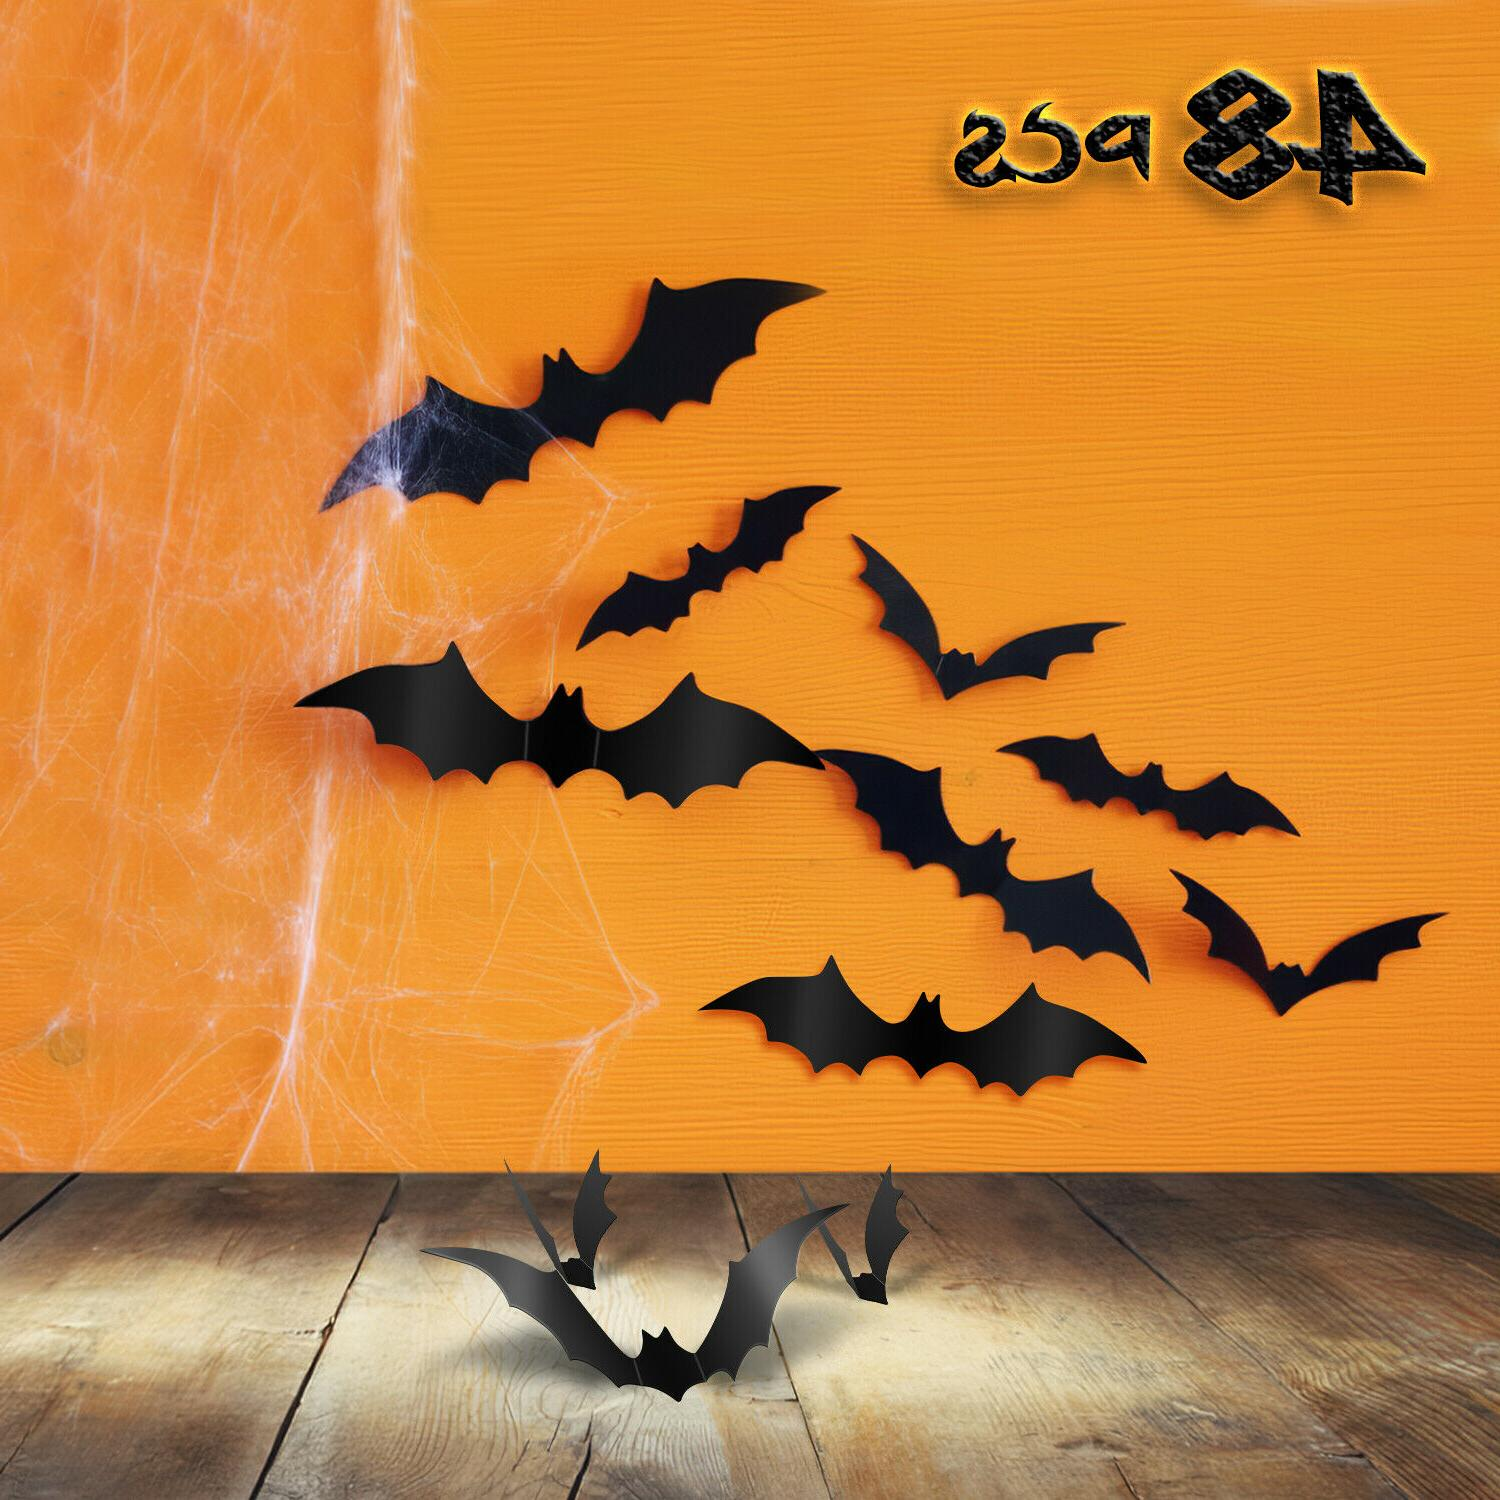 48 pcs Halloween 3D Bat Wall Decals Stickers Scary Spooky Wi